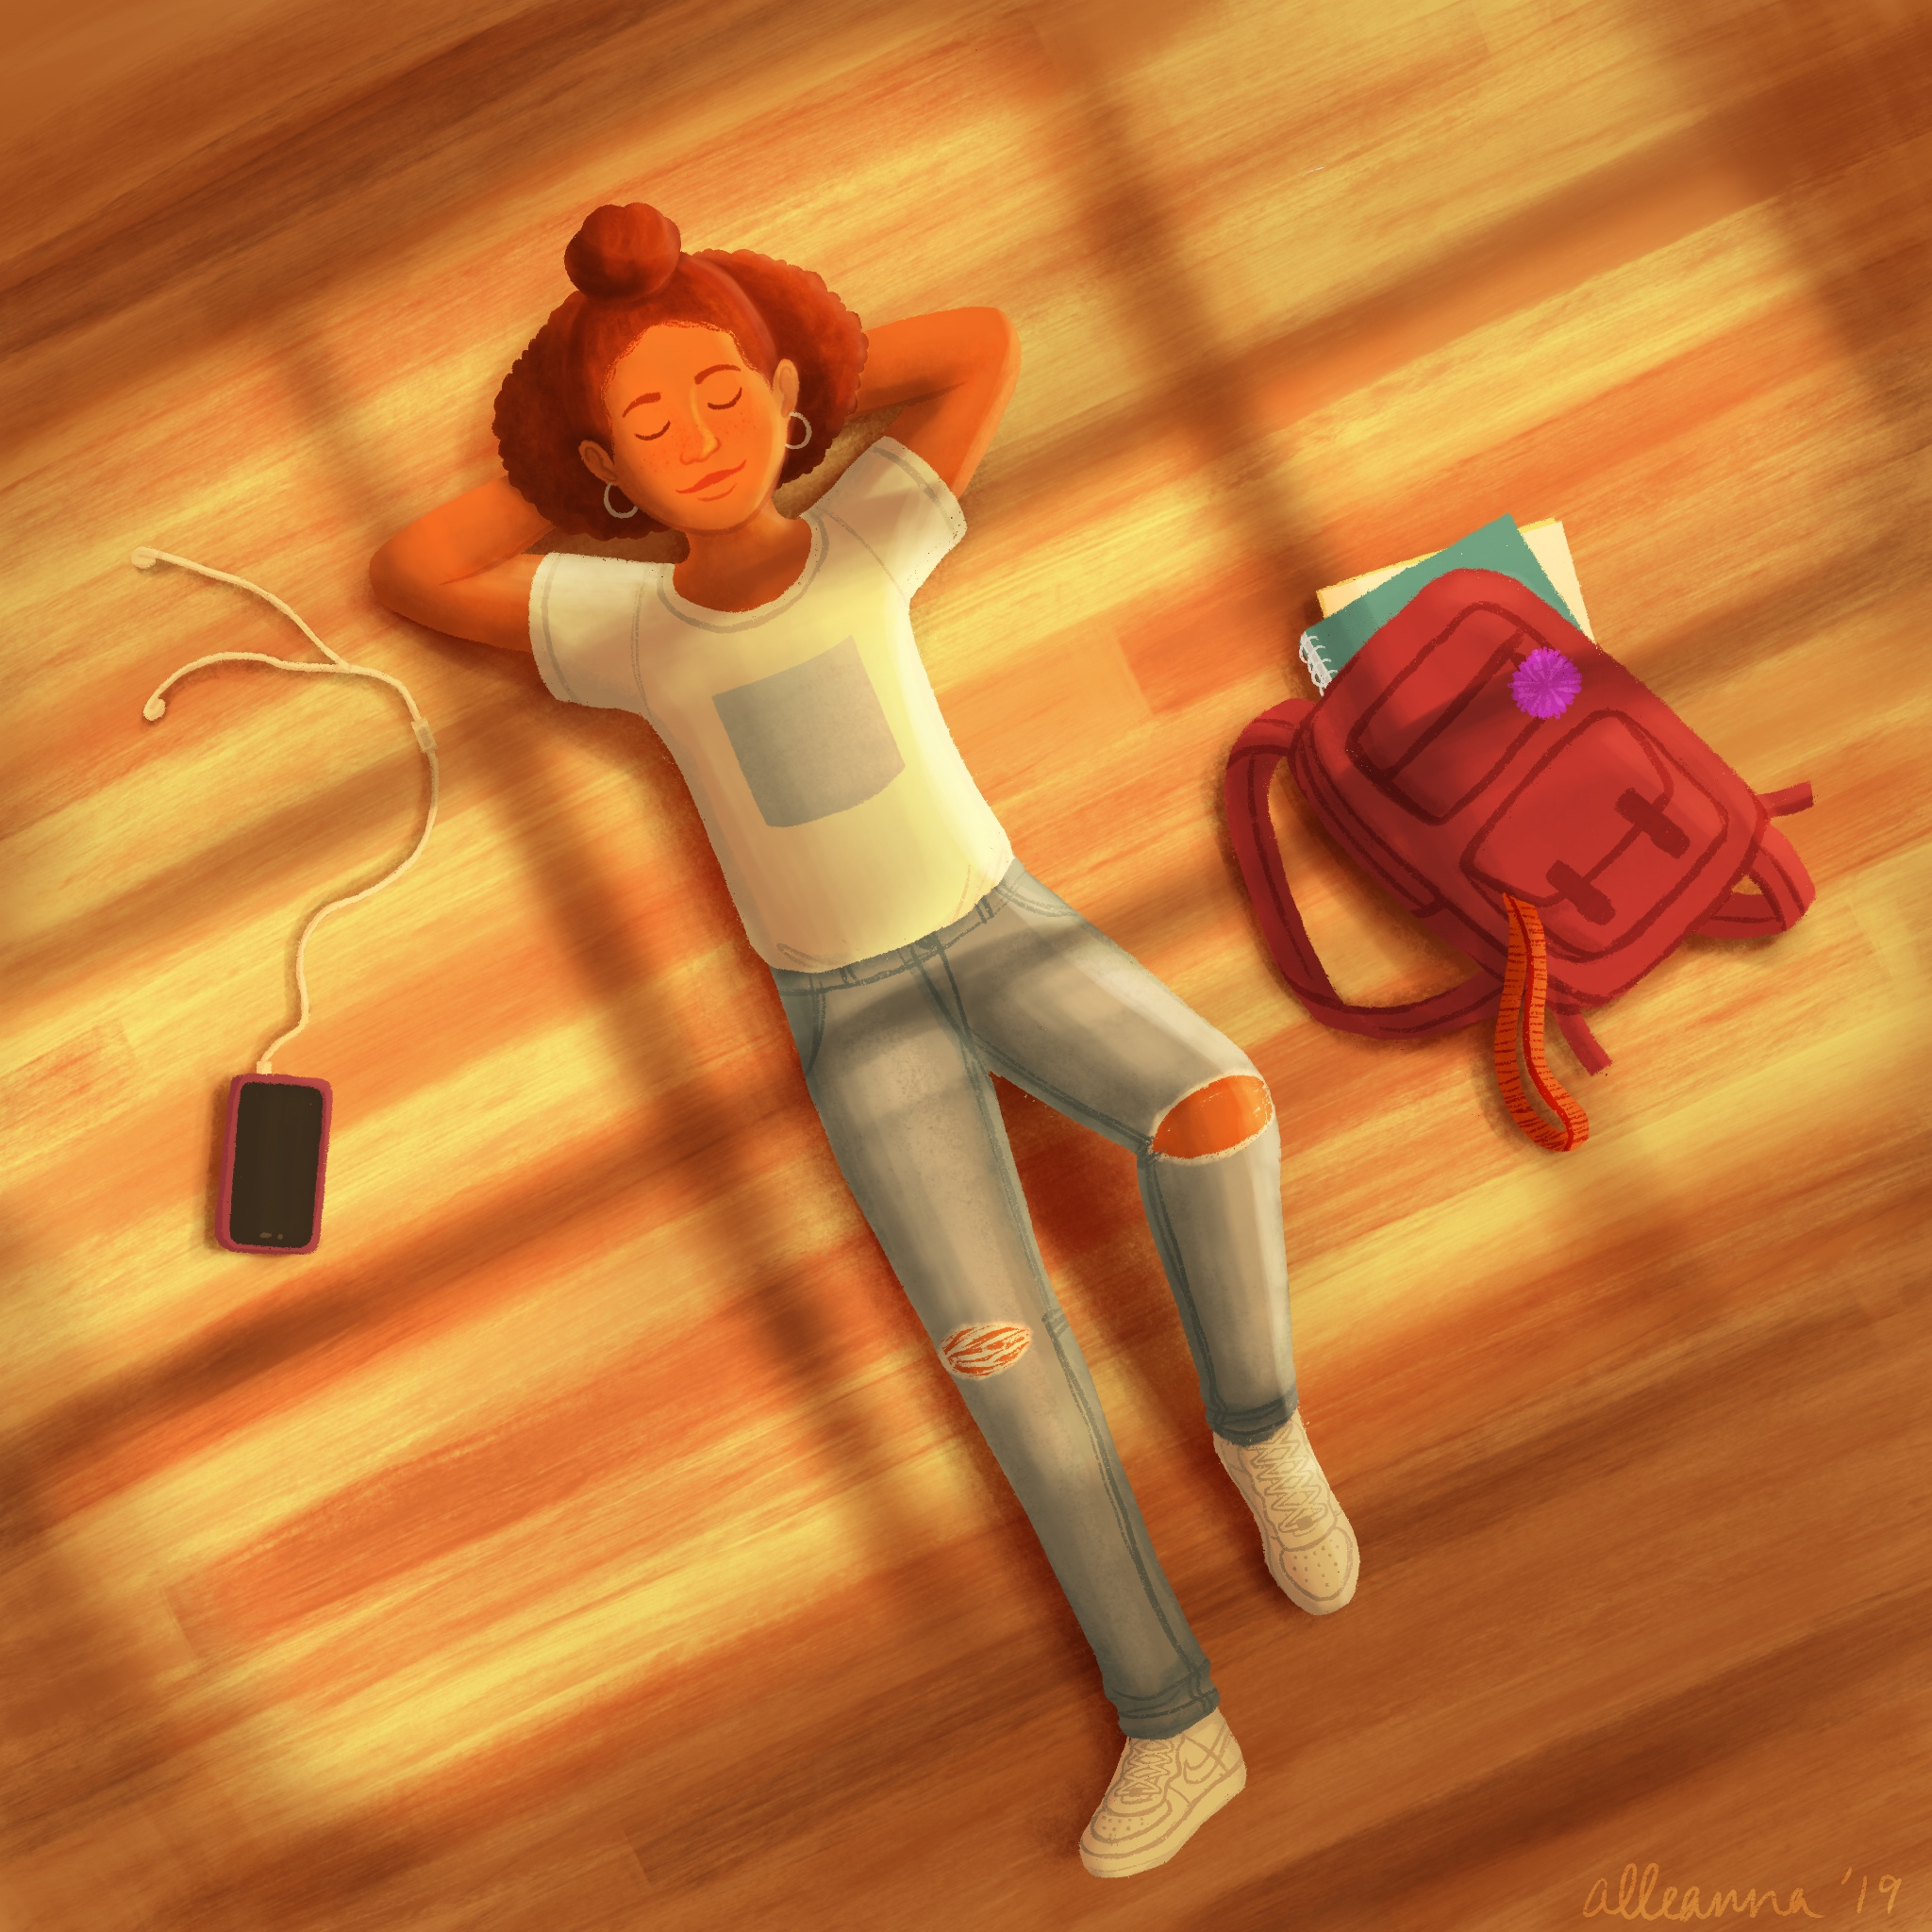 an illustration by alleanna harris of a teenage girl laying on the floor in the sunlight